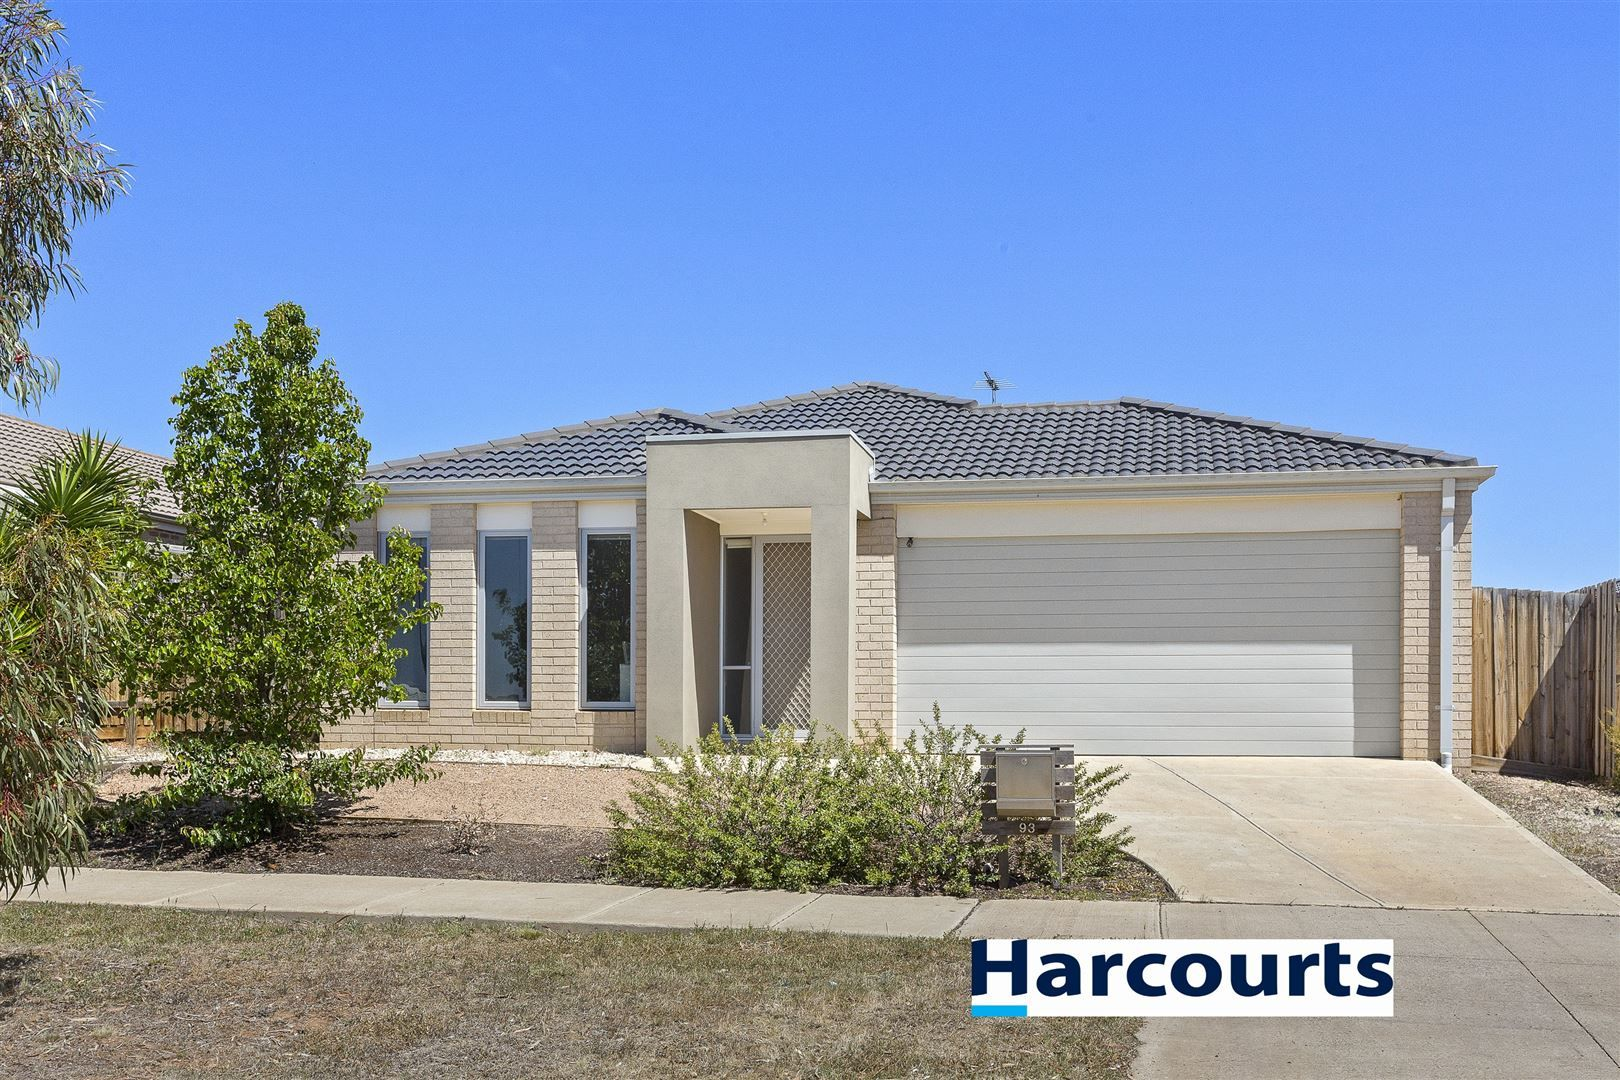 93 Halletts Way, Bacchus Marsh VIC 3340, Image 0